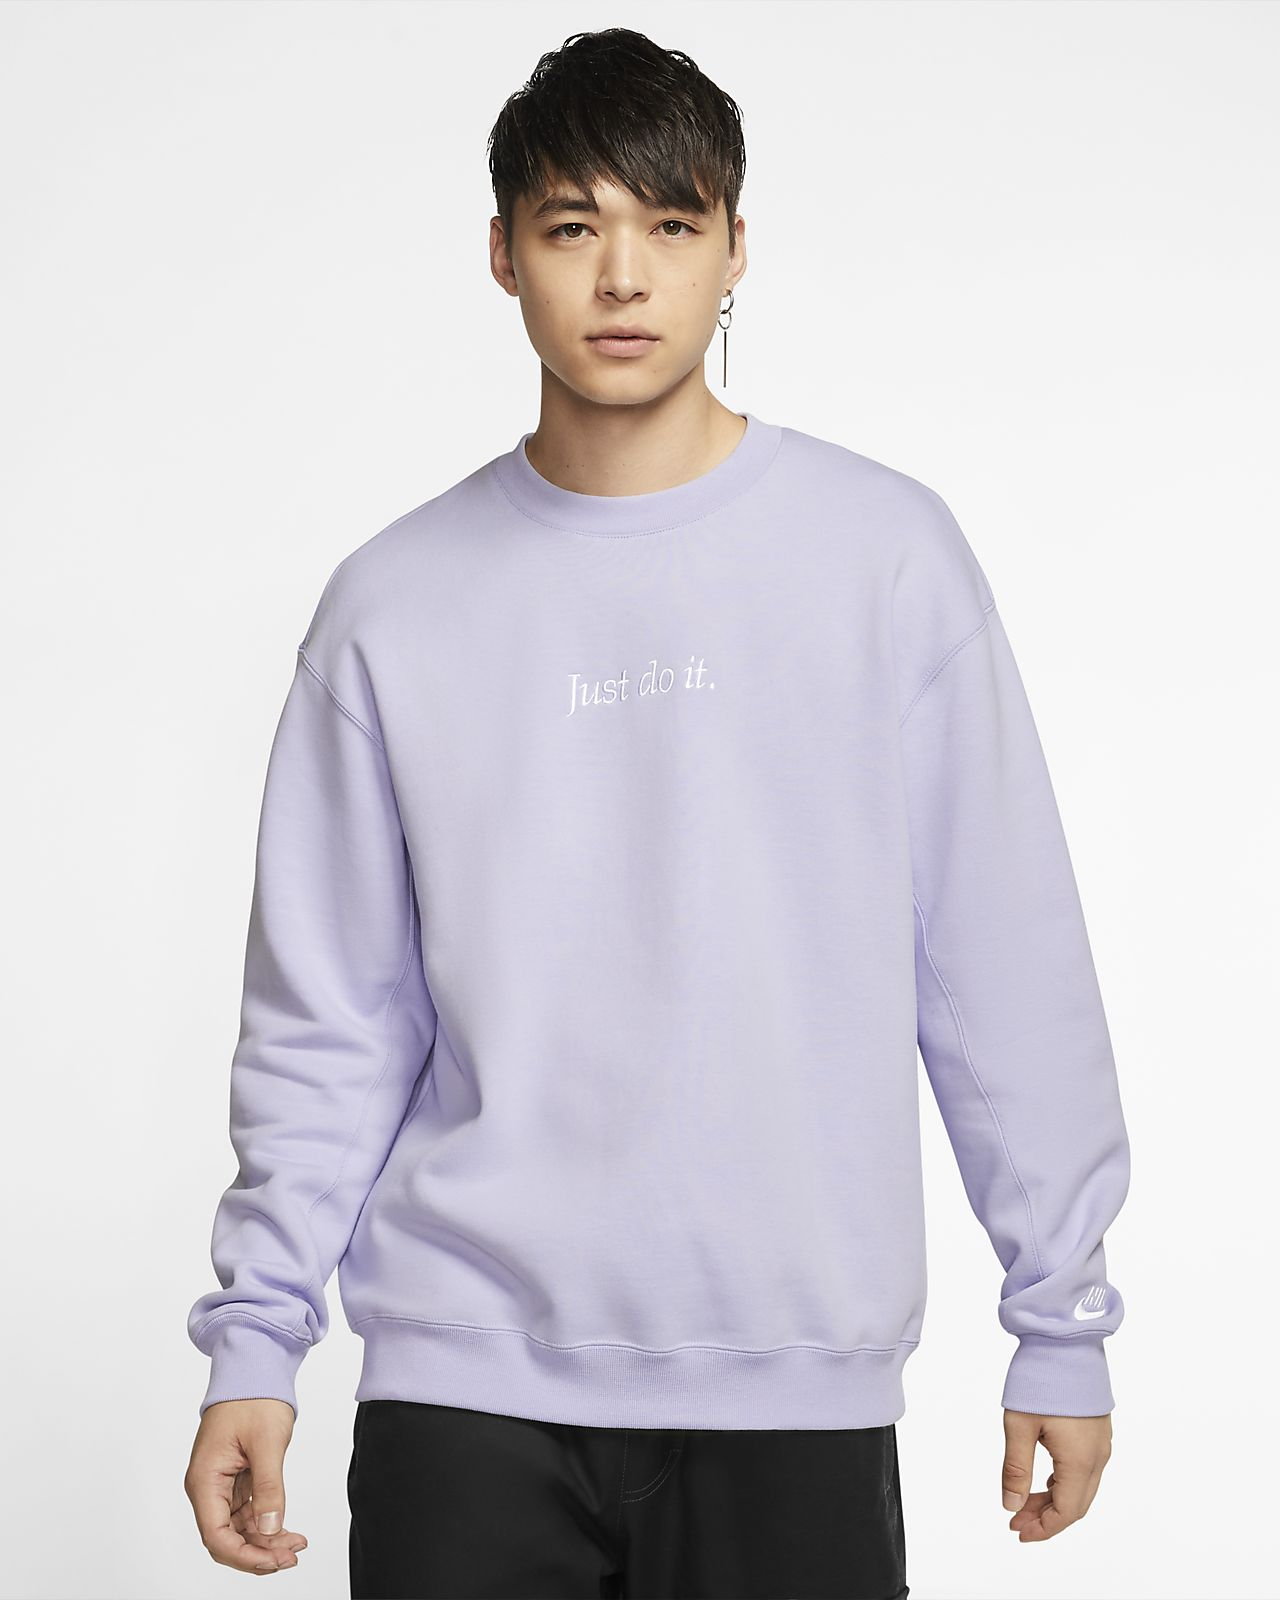 Details about Nike Just Do It Crew Sweatshirt Mens Sweater Top Jumper